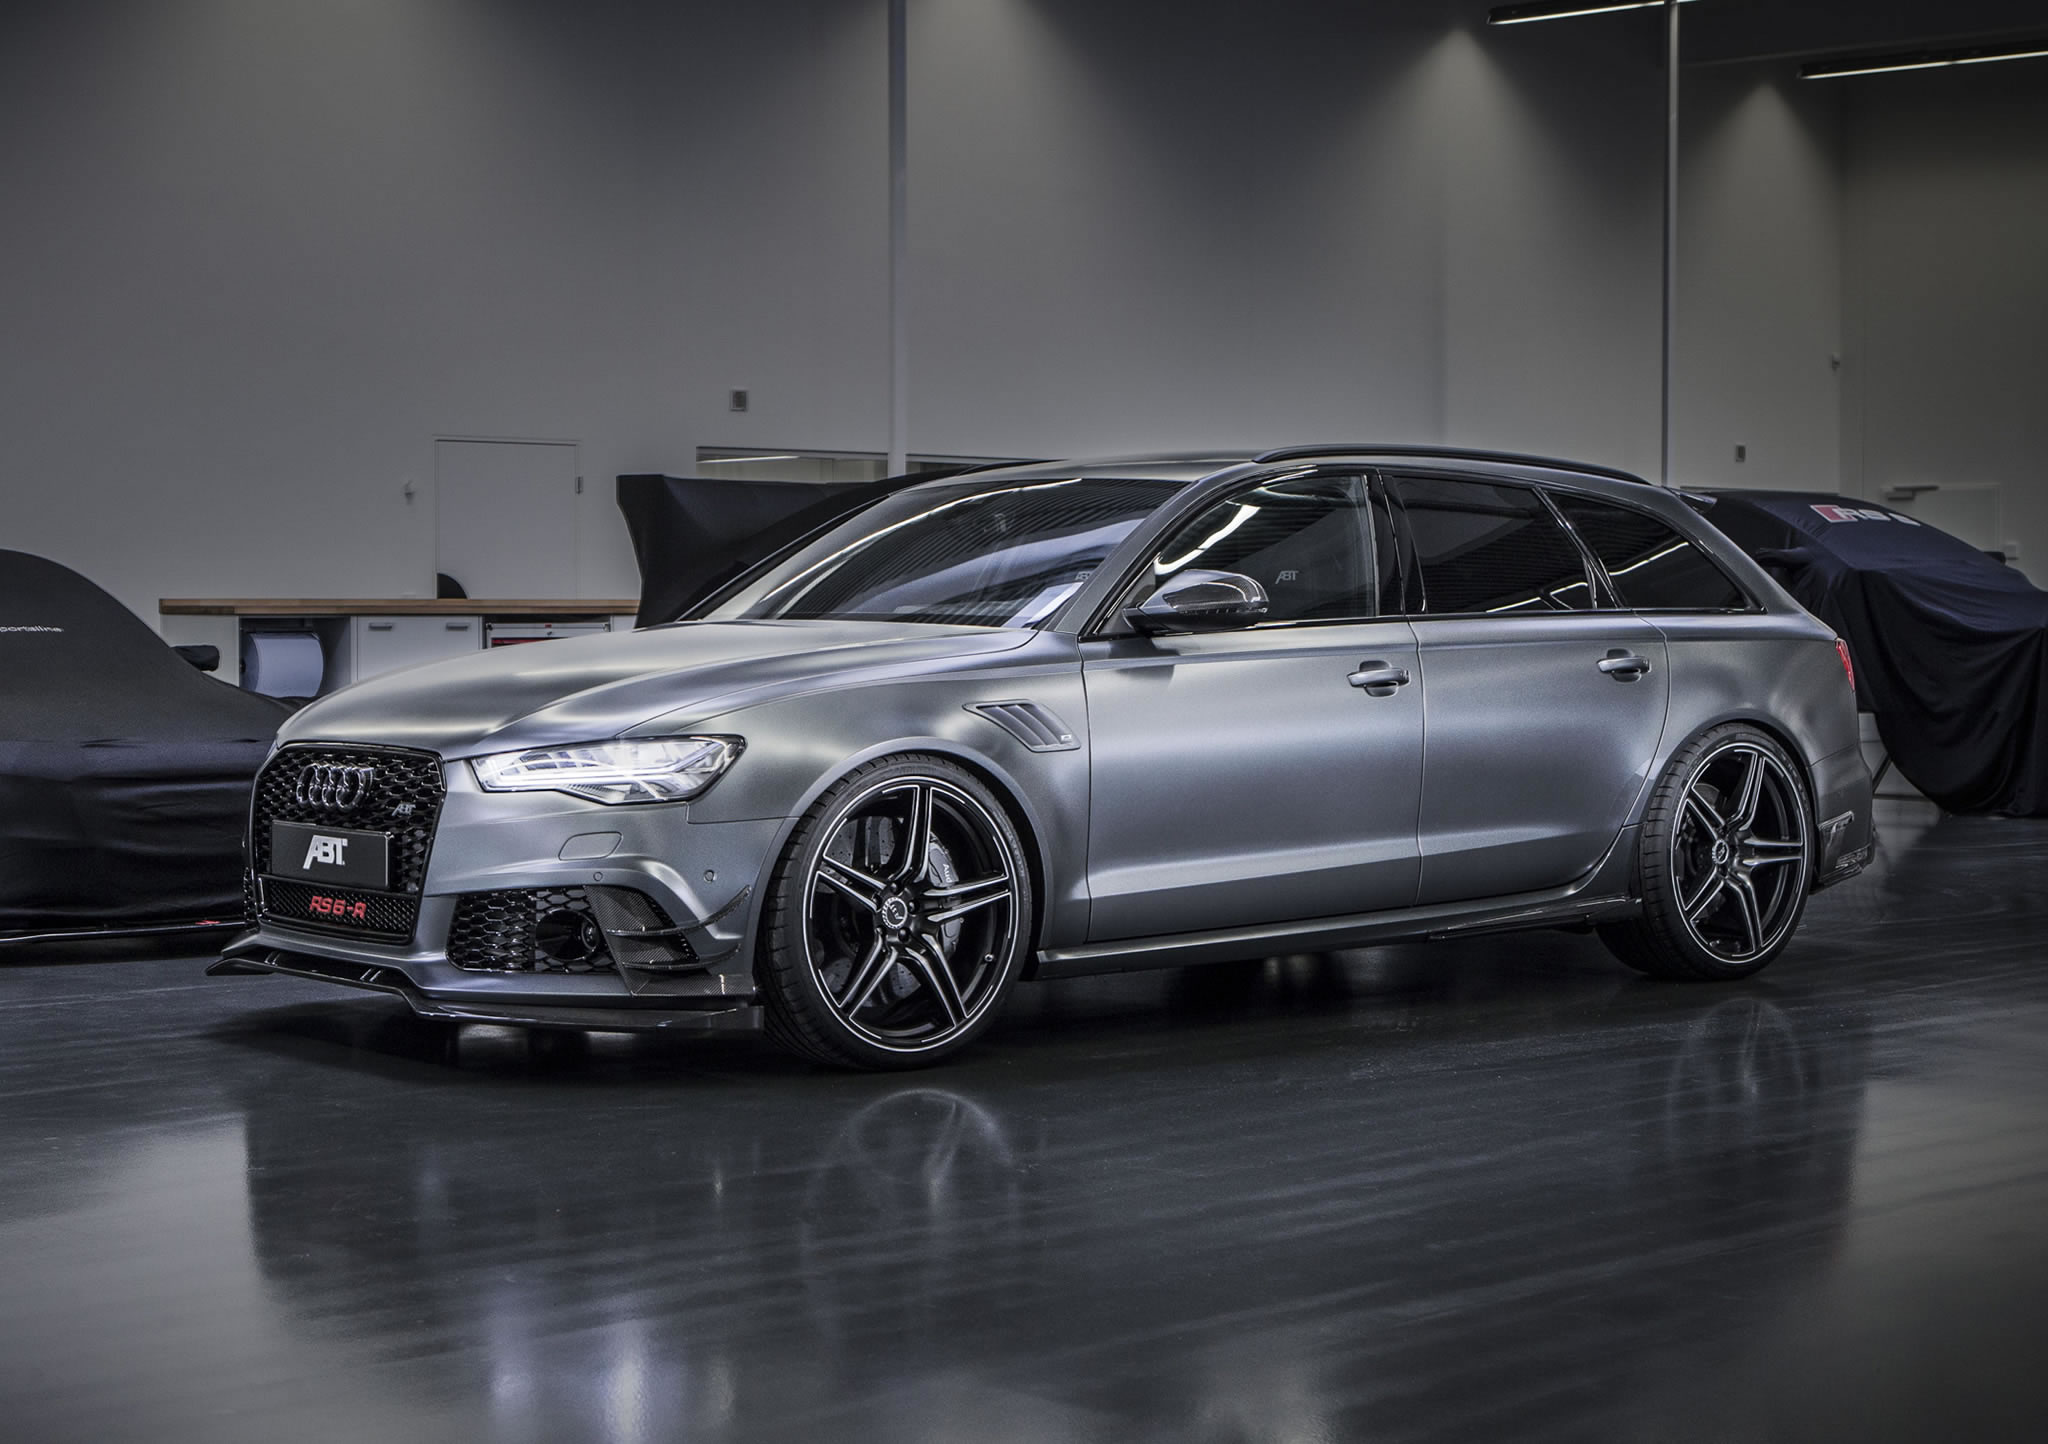 2016 audi rs6 r by abt front photo daytona grey matt paint size 2048 x 1444 nr 1 9. Black Bedroom Furniture Sets. Home Design Ideas